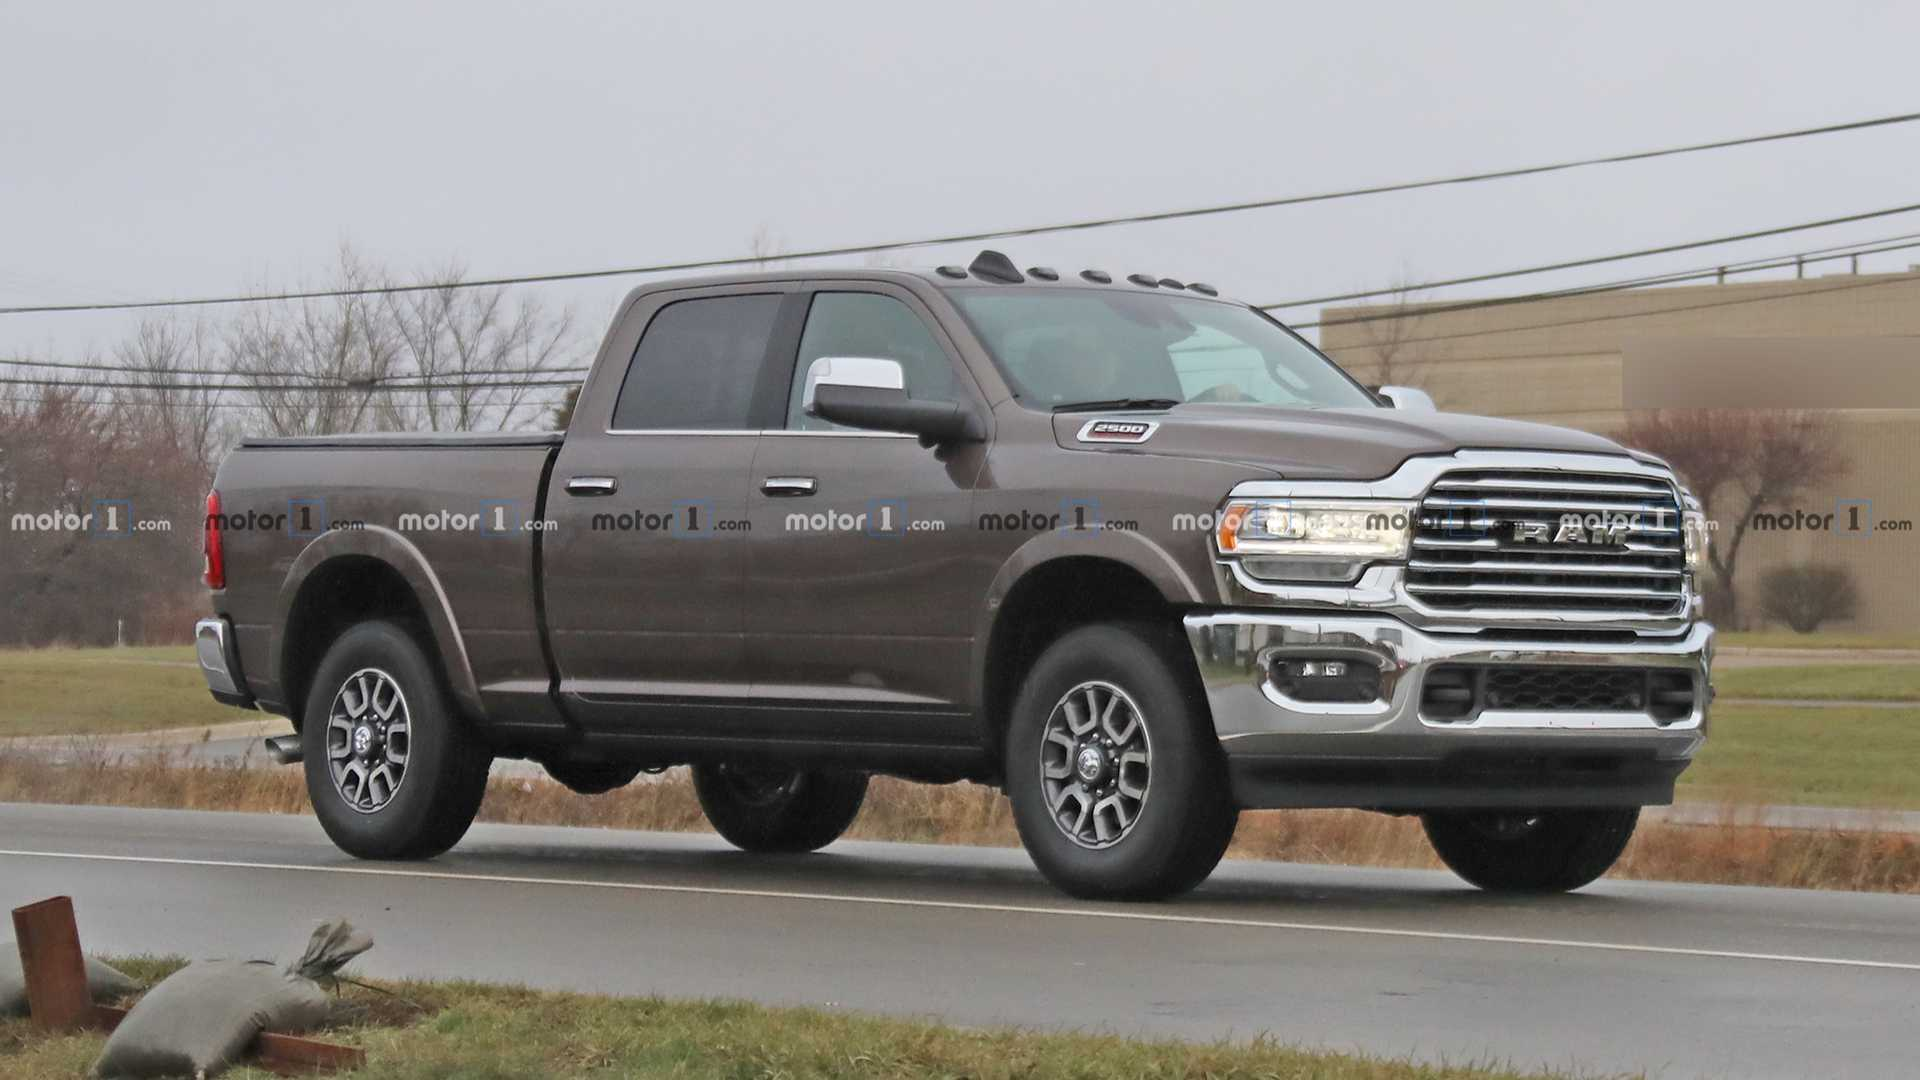 47 New 2020 Dodge Ram 2500 Configurations